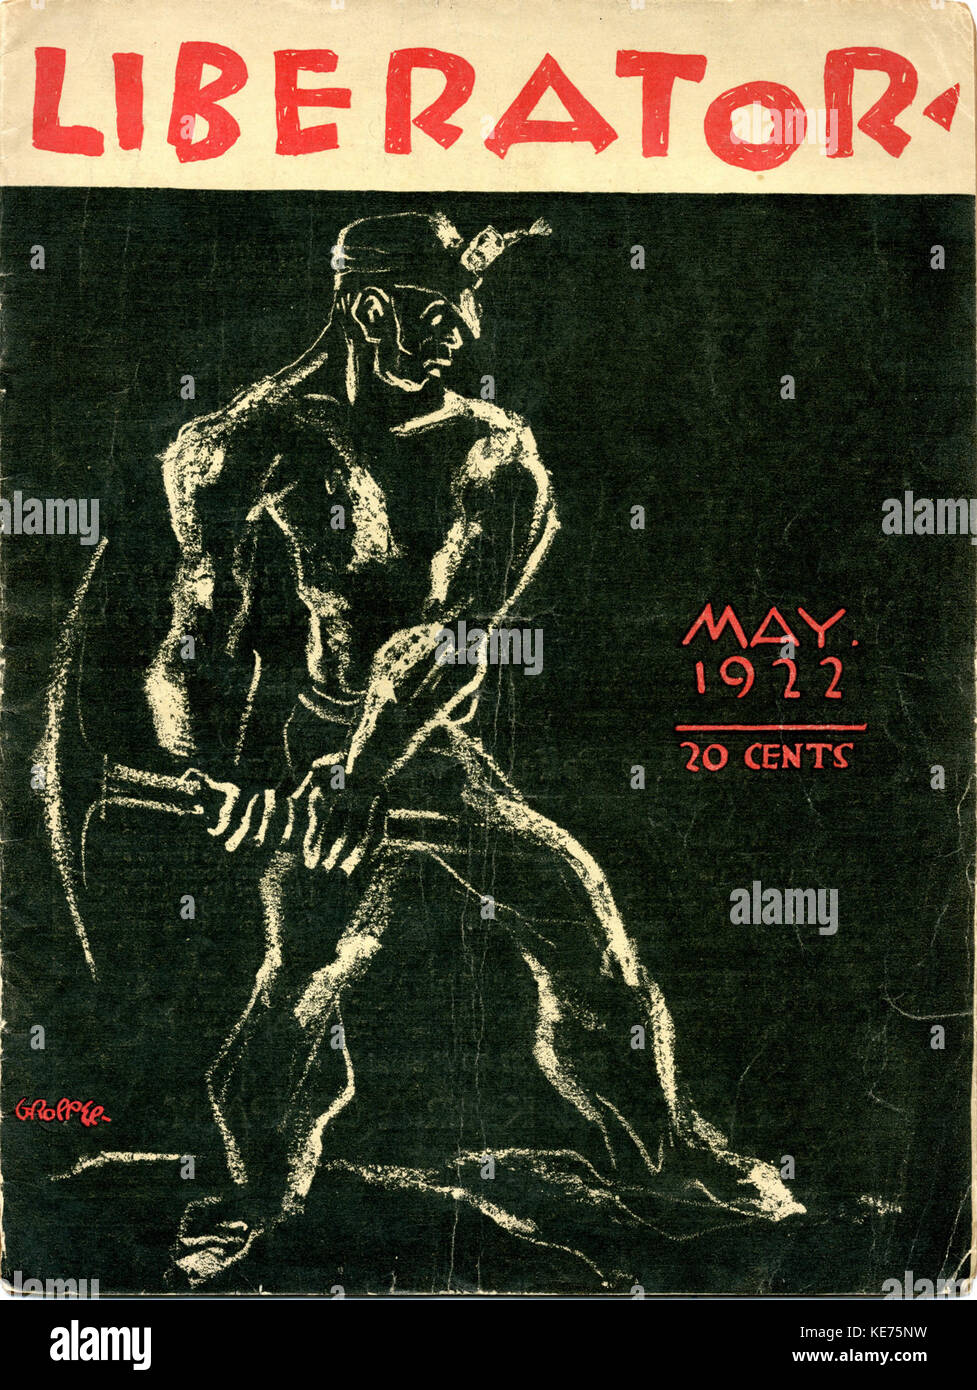 V5n05 w50 may 1922 liberator hrcover - Stock Image